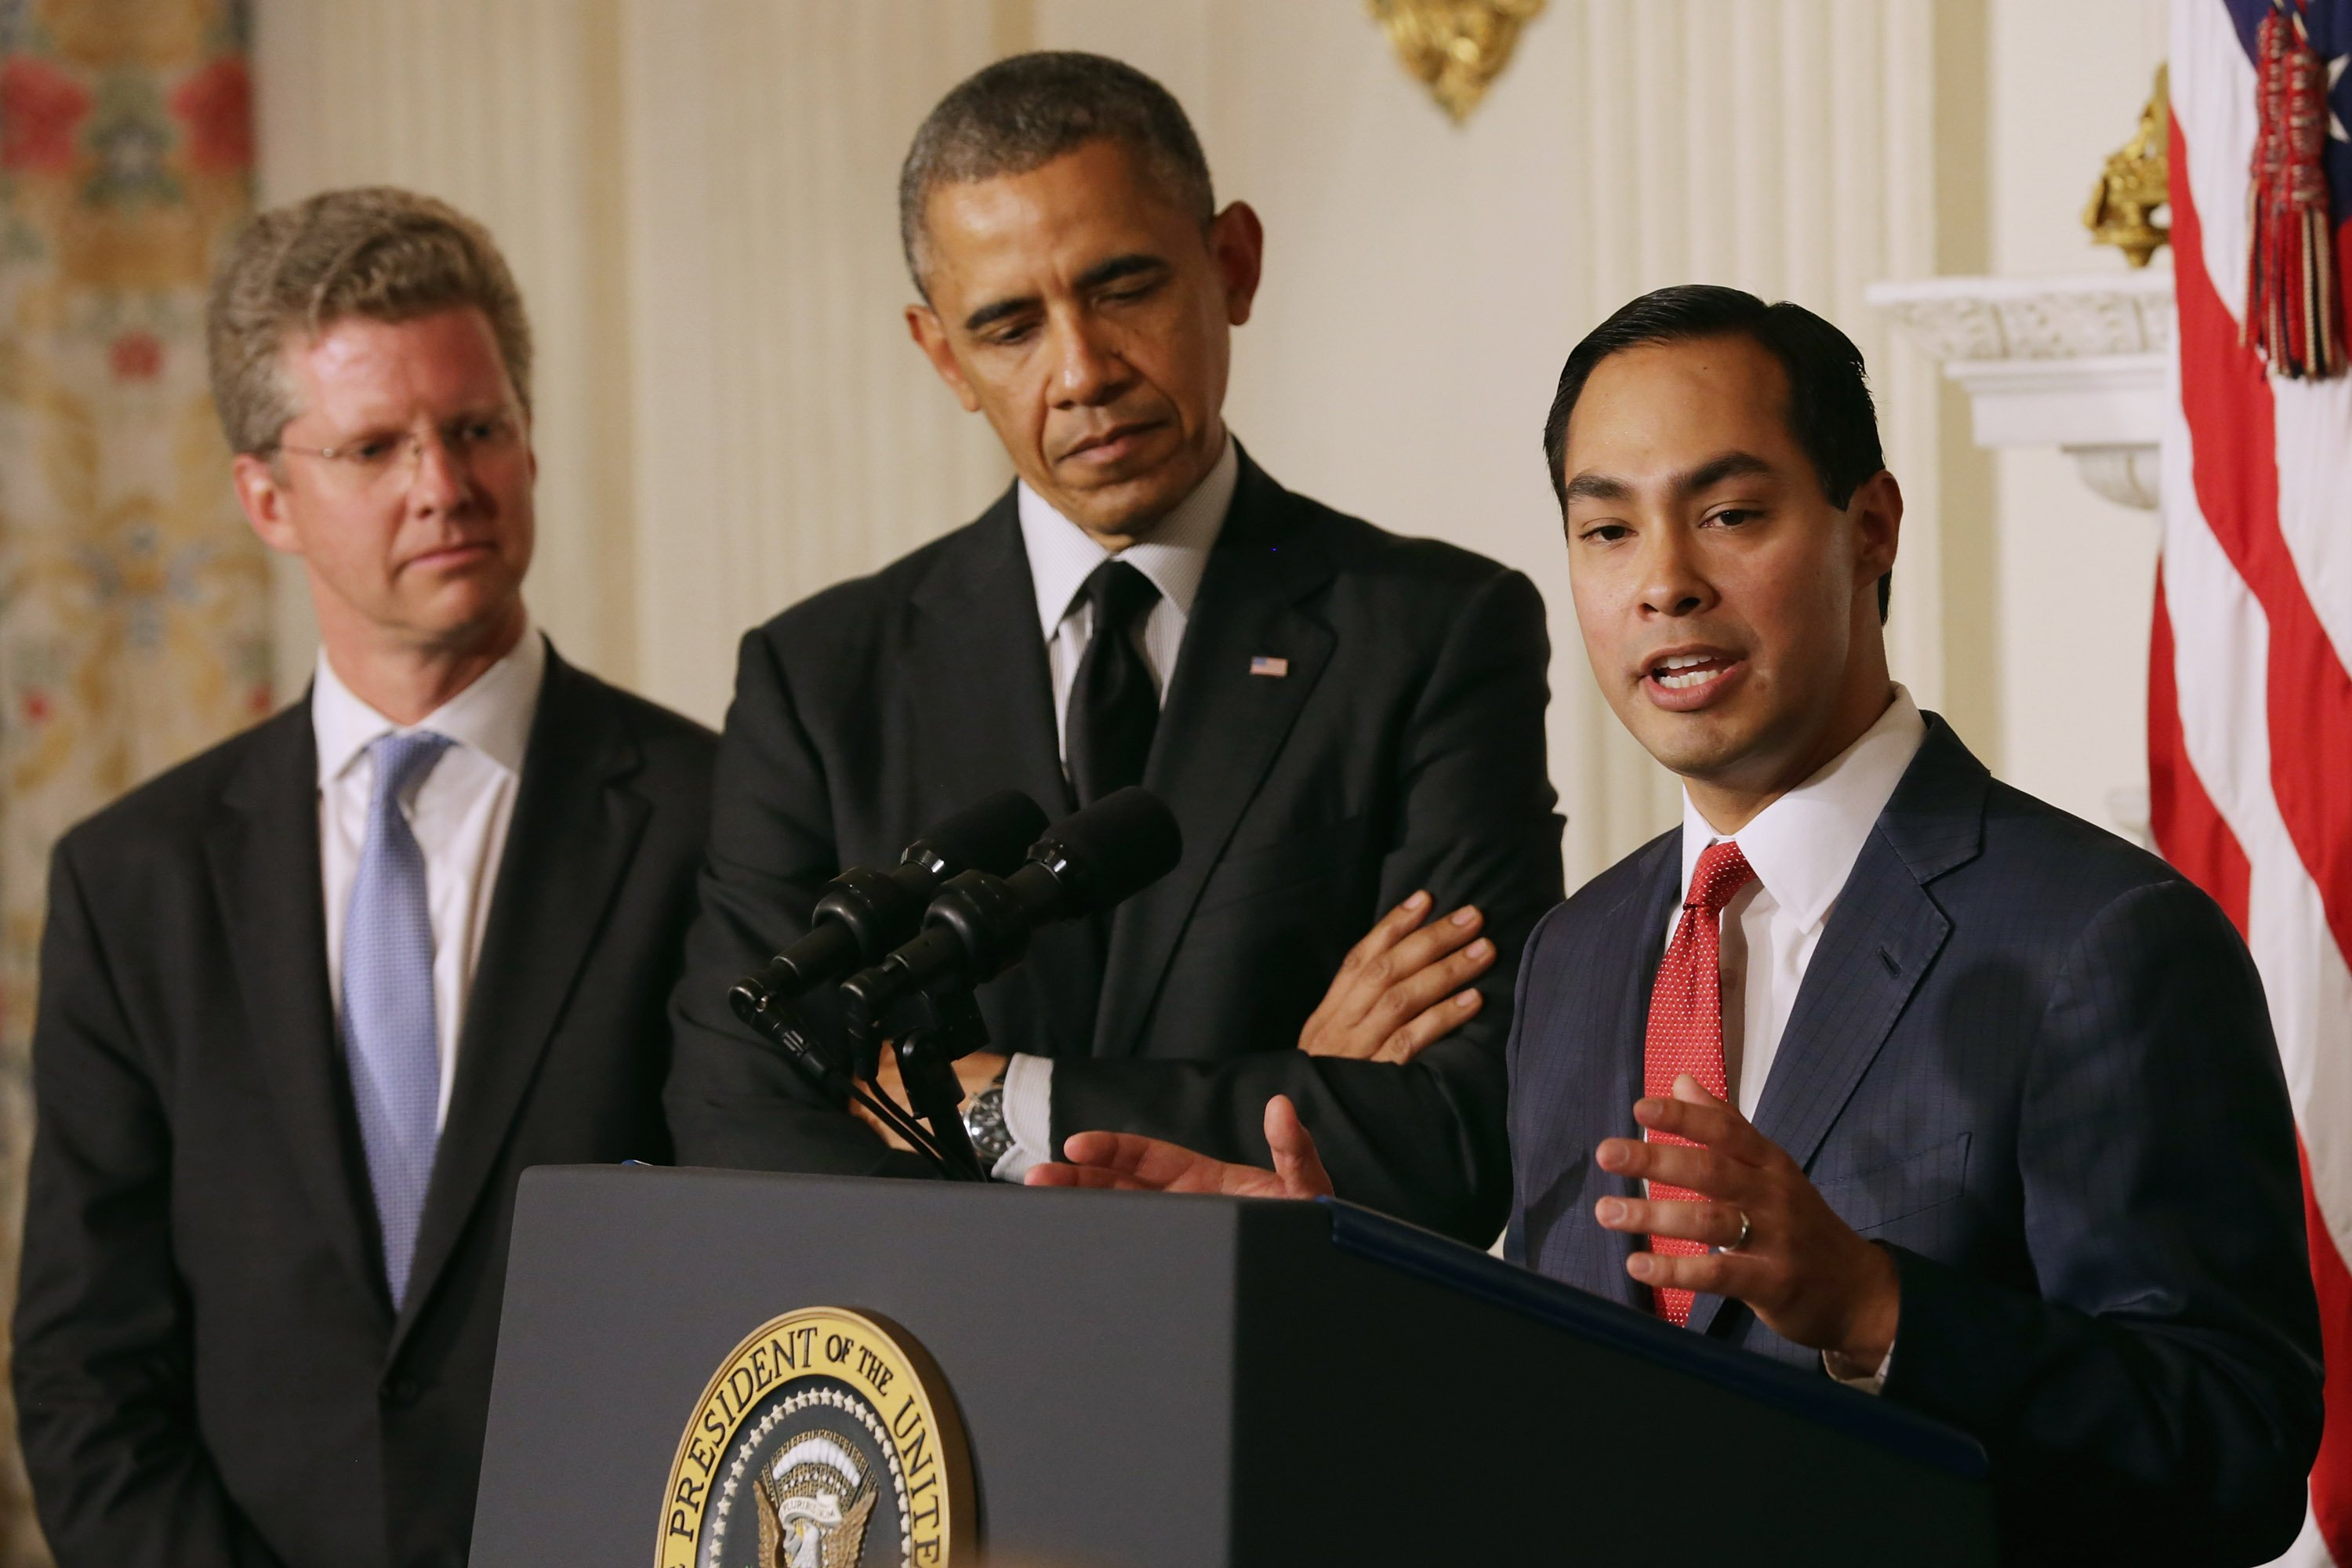 San Antonio Mayor Julian Castro (R) delivers remarks after U.S. President Barack Obama (C) announced his nomination of Castro to lead the Department of Housing and Urban Development and Shaun Donovan (L) as the nominee to head the Office of Management and Budget in the State Dining Room at the White House on May 23, 2014 in Washington.